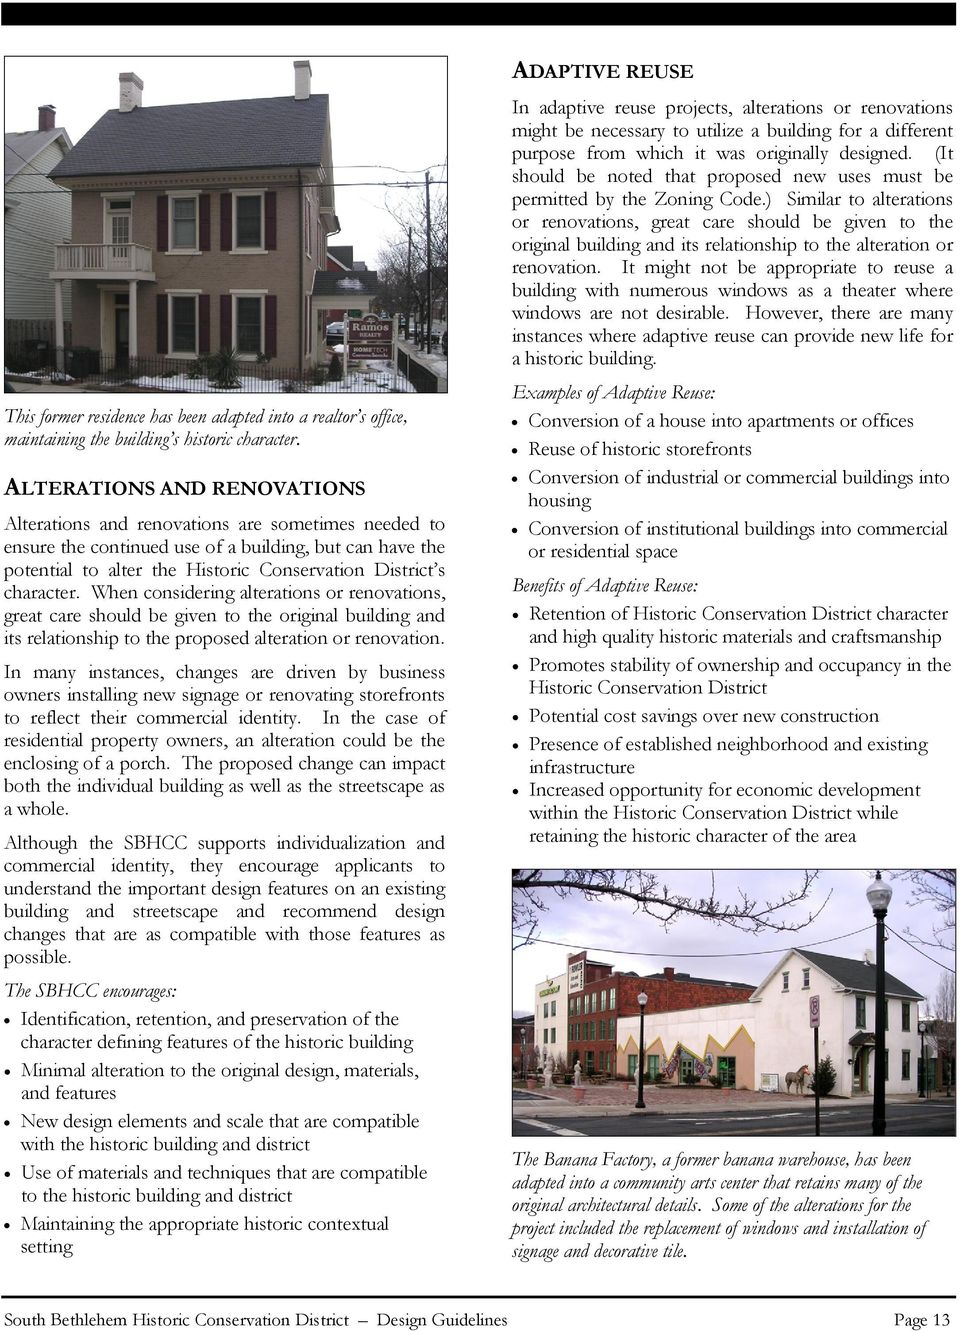 character. When considering alterations or renovations, great care should be given to the original building and its relationship to the proposed alteration or renovation.